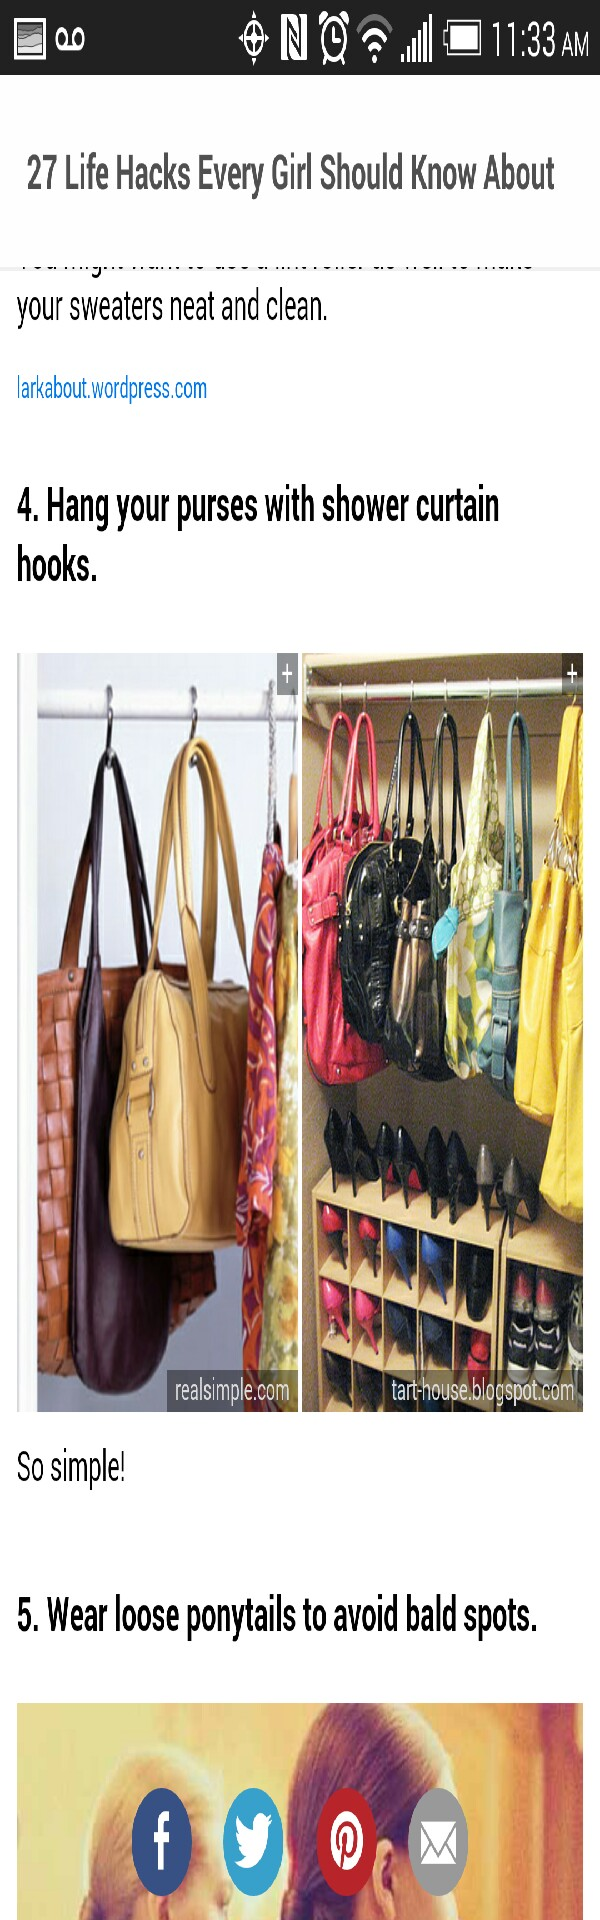 Hang purses with shower curtain hooks musely for Hooks to hang purses